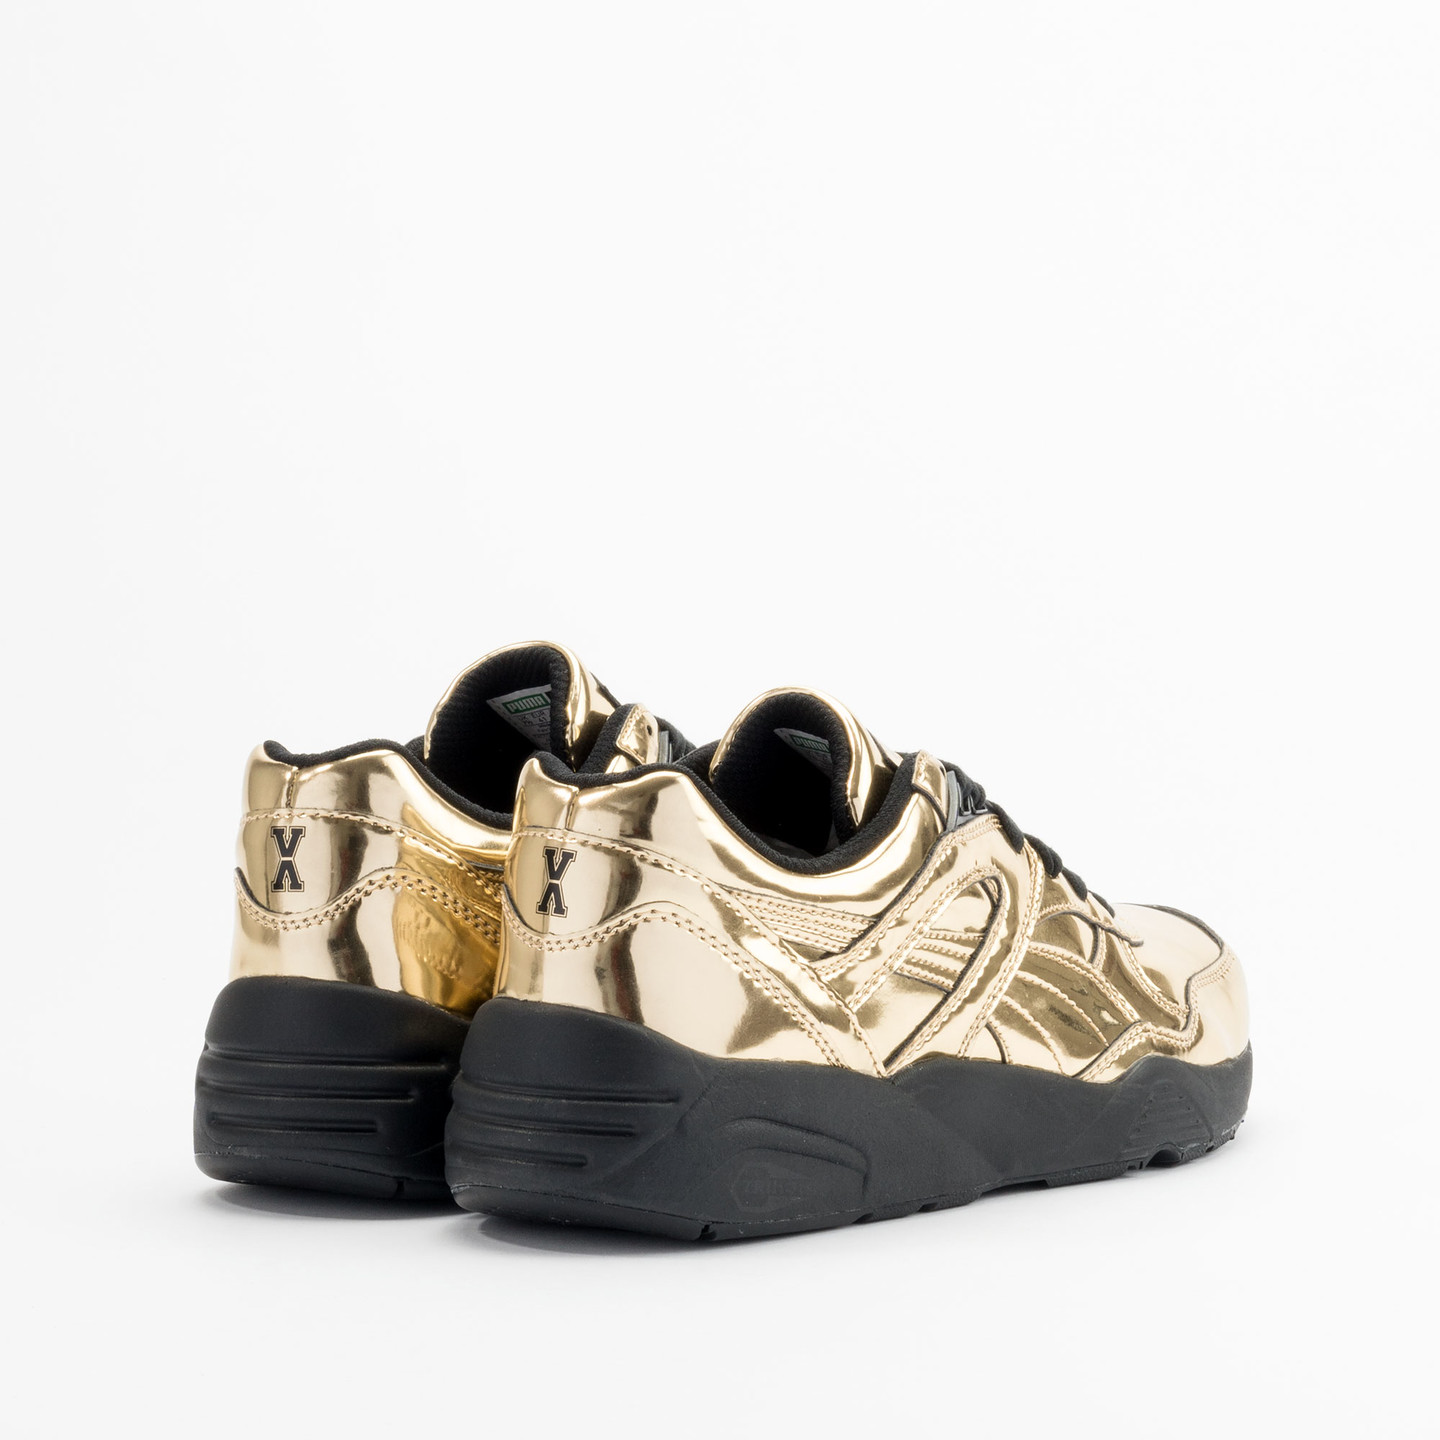 Puma R698 x Vashtie Gold Metallic Gold / Black 358838 01-42